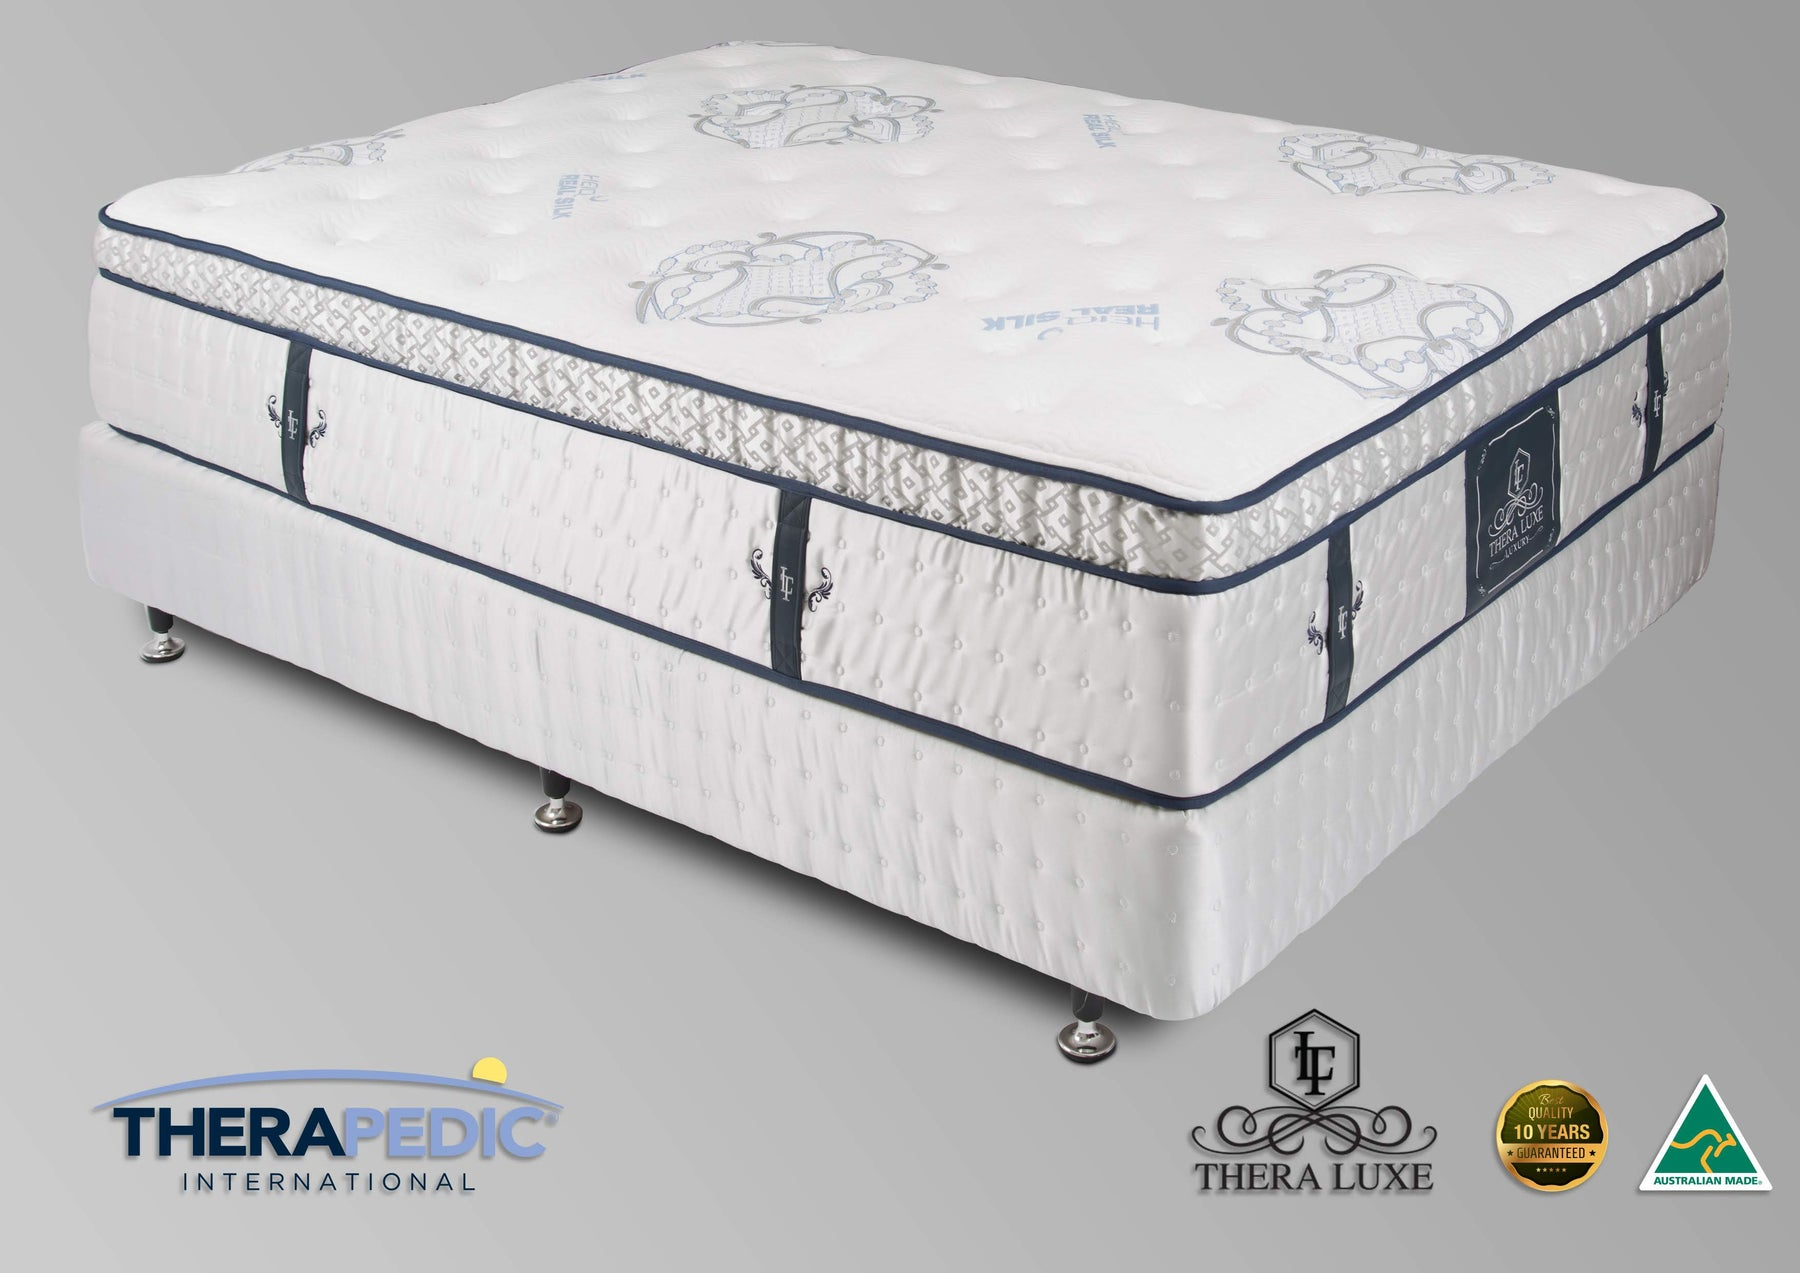 Thera Luxe Comfort Medium Mattress